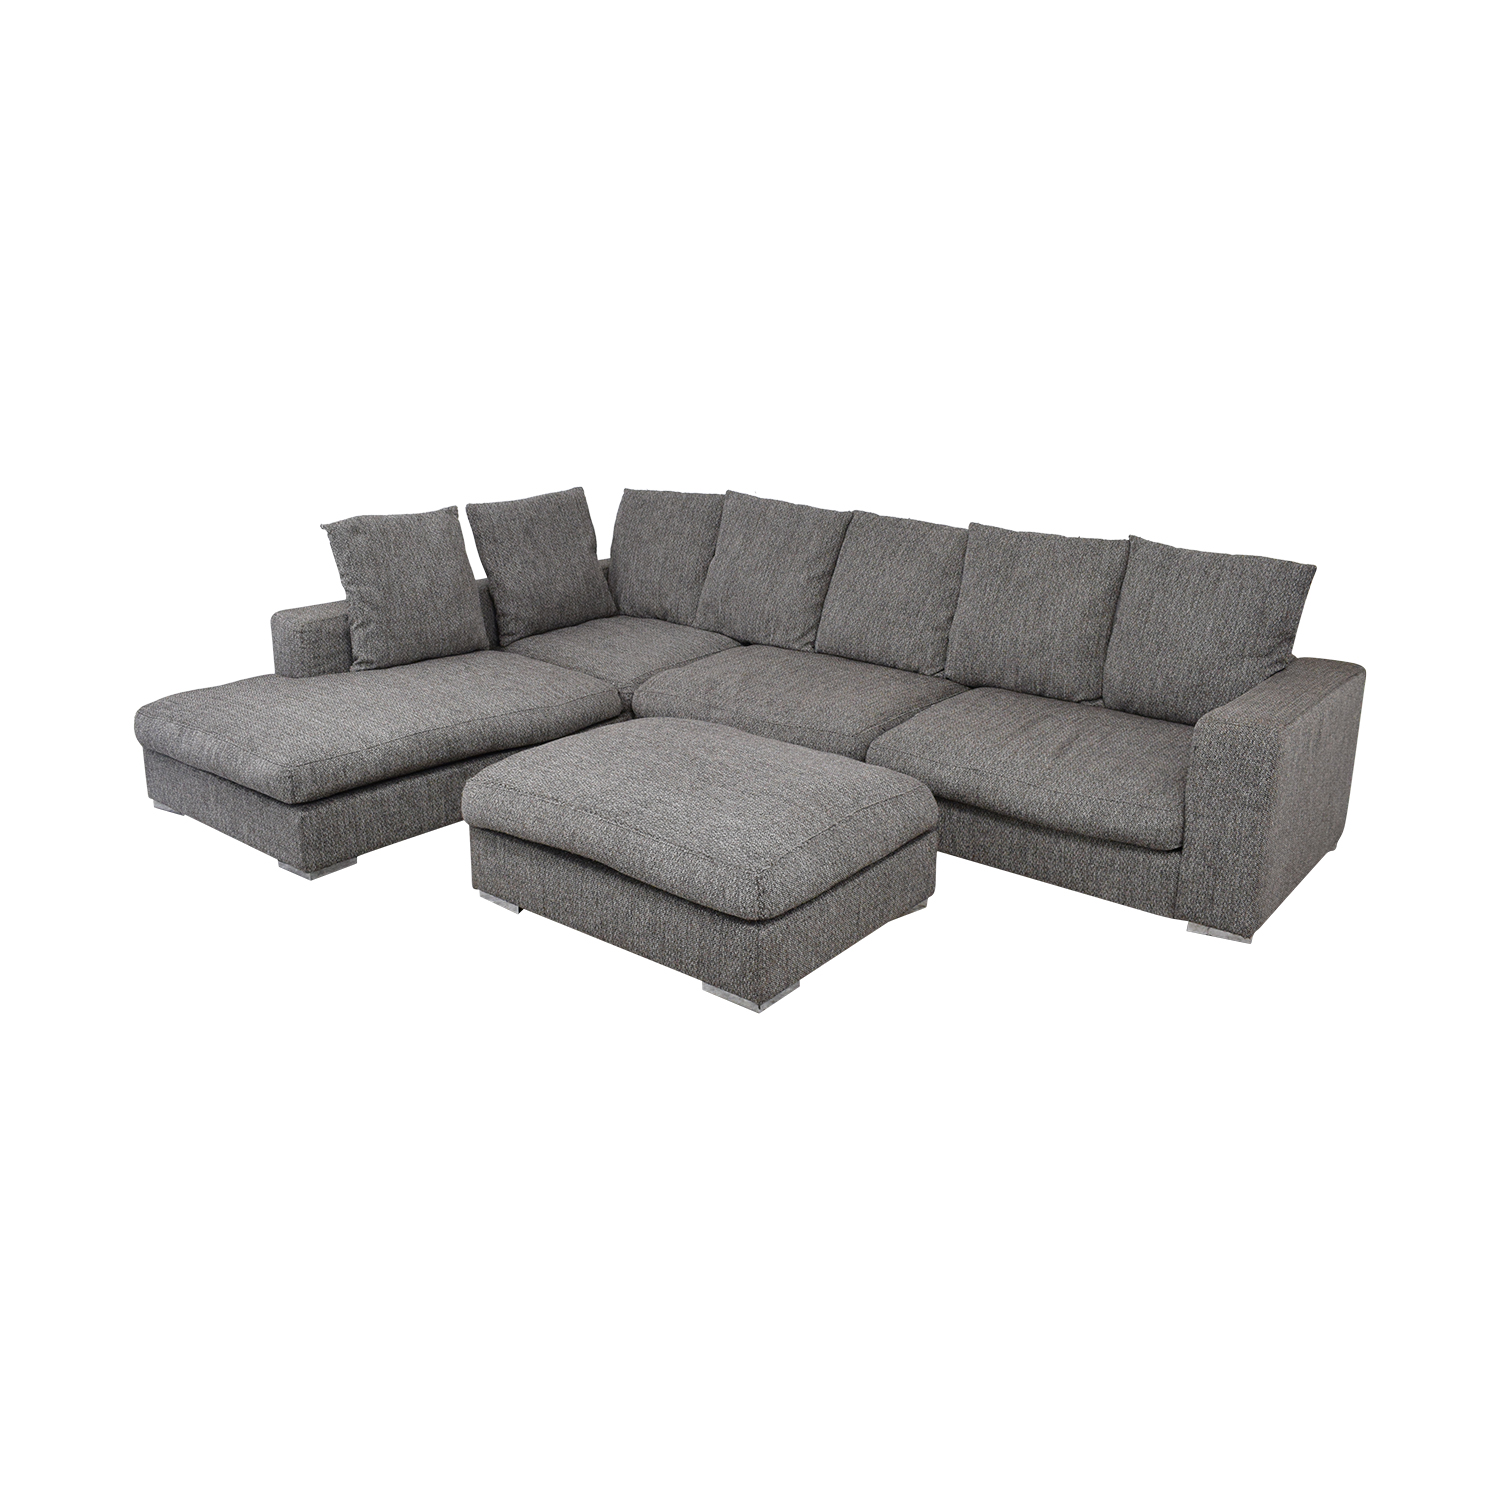 Sofa Boconcept 69% Off - Boconcept Boconcept L-shaped Modular Sofa With ...